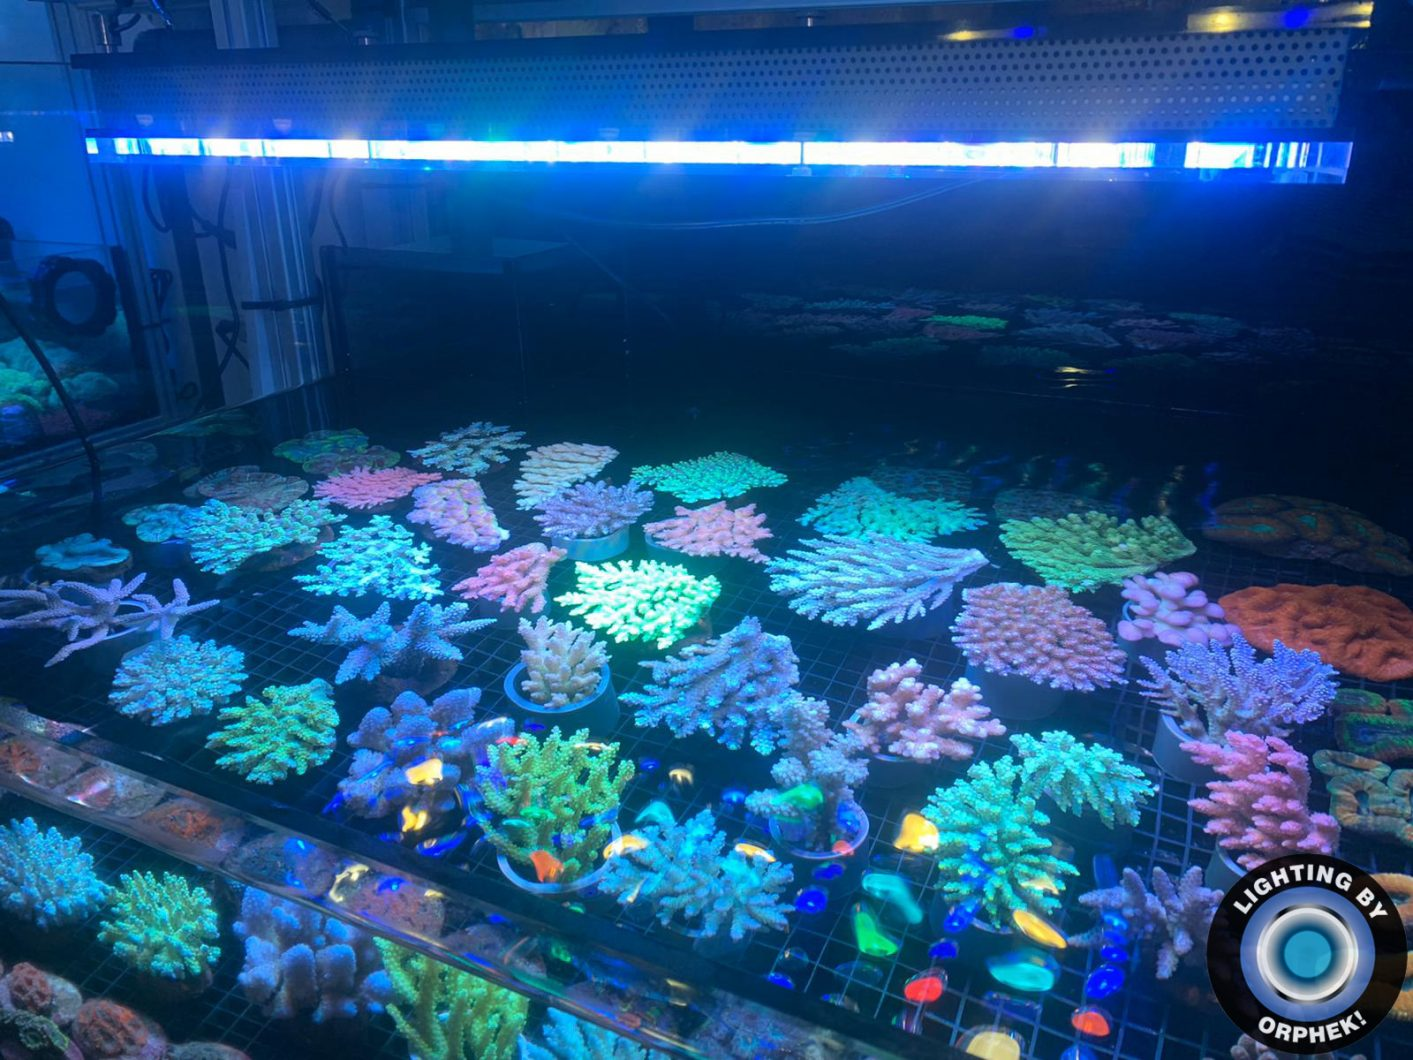 best coral growth reef aquarium LED lighting 2020